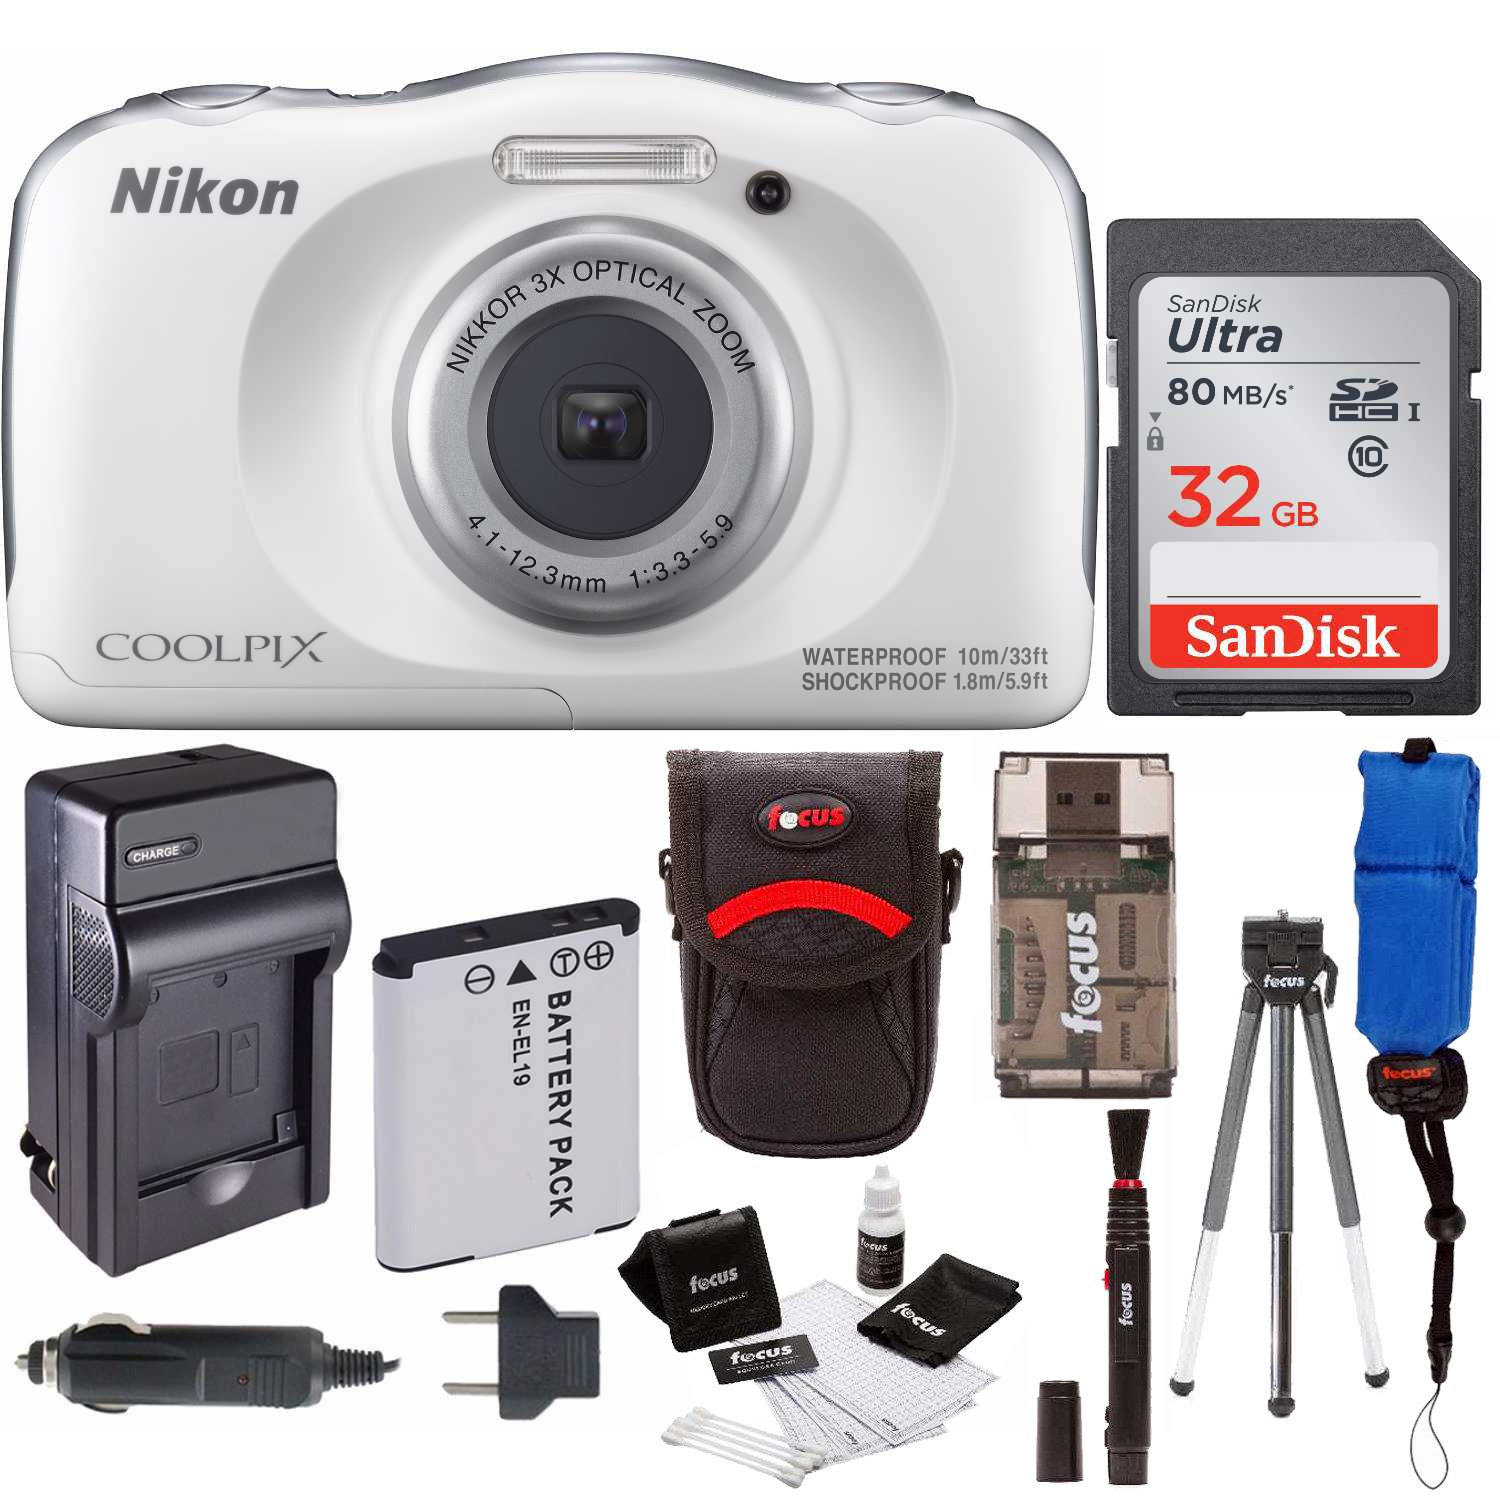 Nikon COOLPIX W100 Waterproof Digital Camera (White) + 32GB Card + Battery with Charger + + Kit